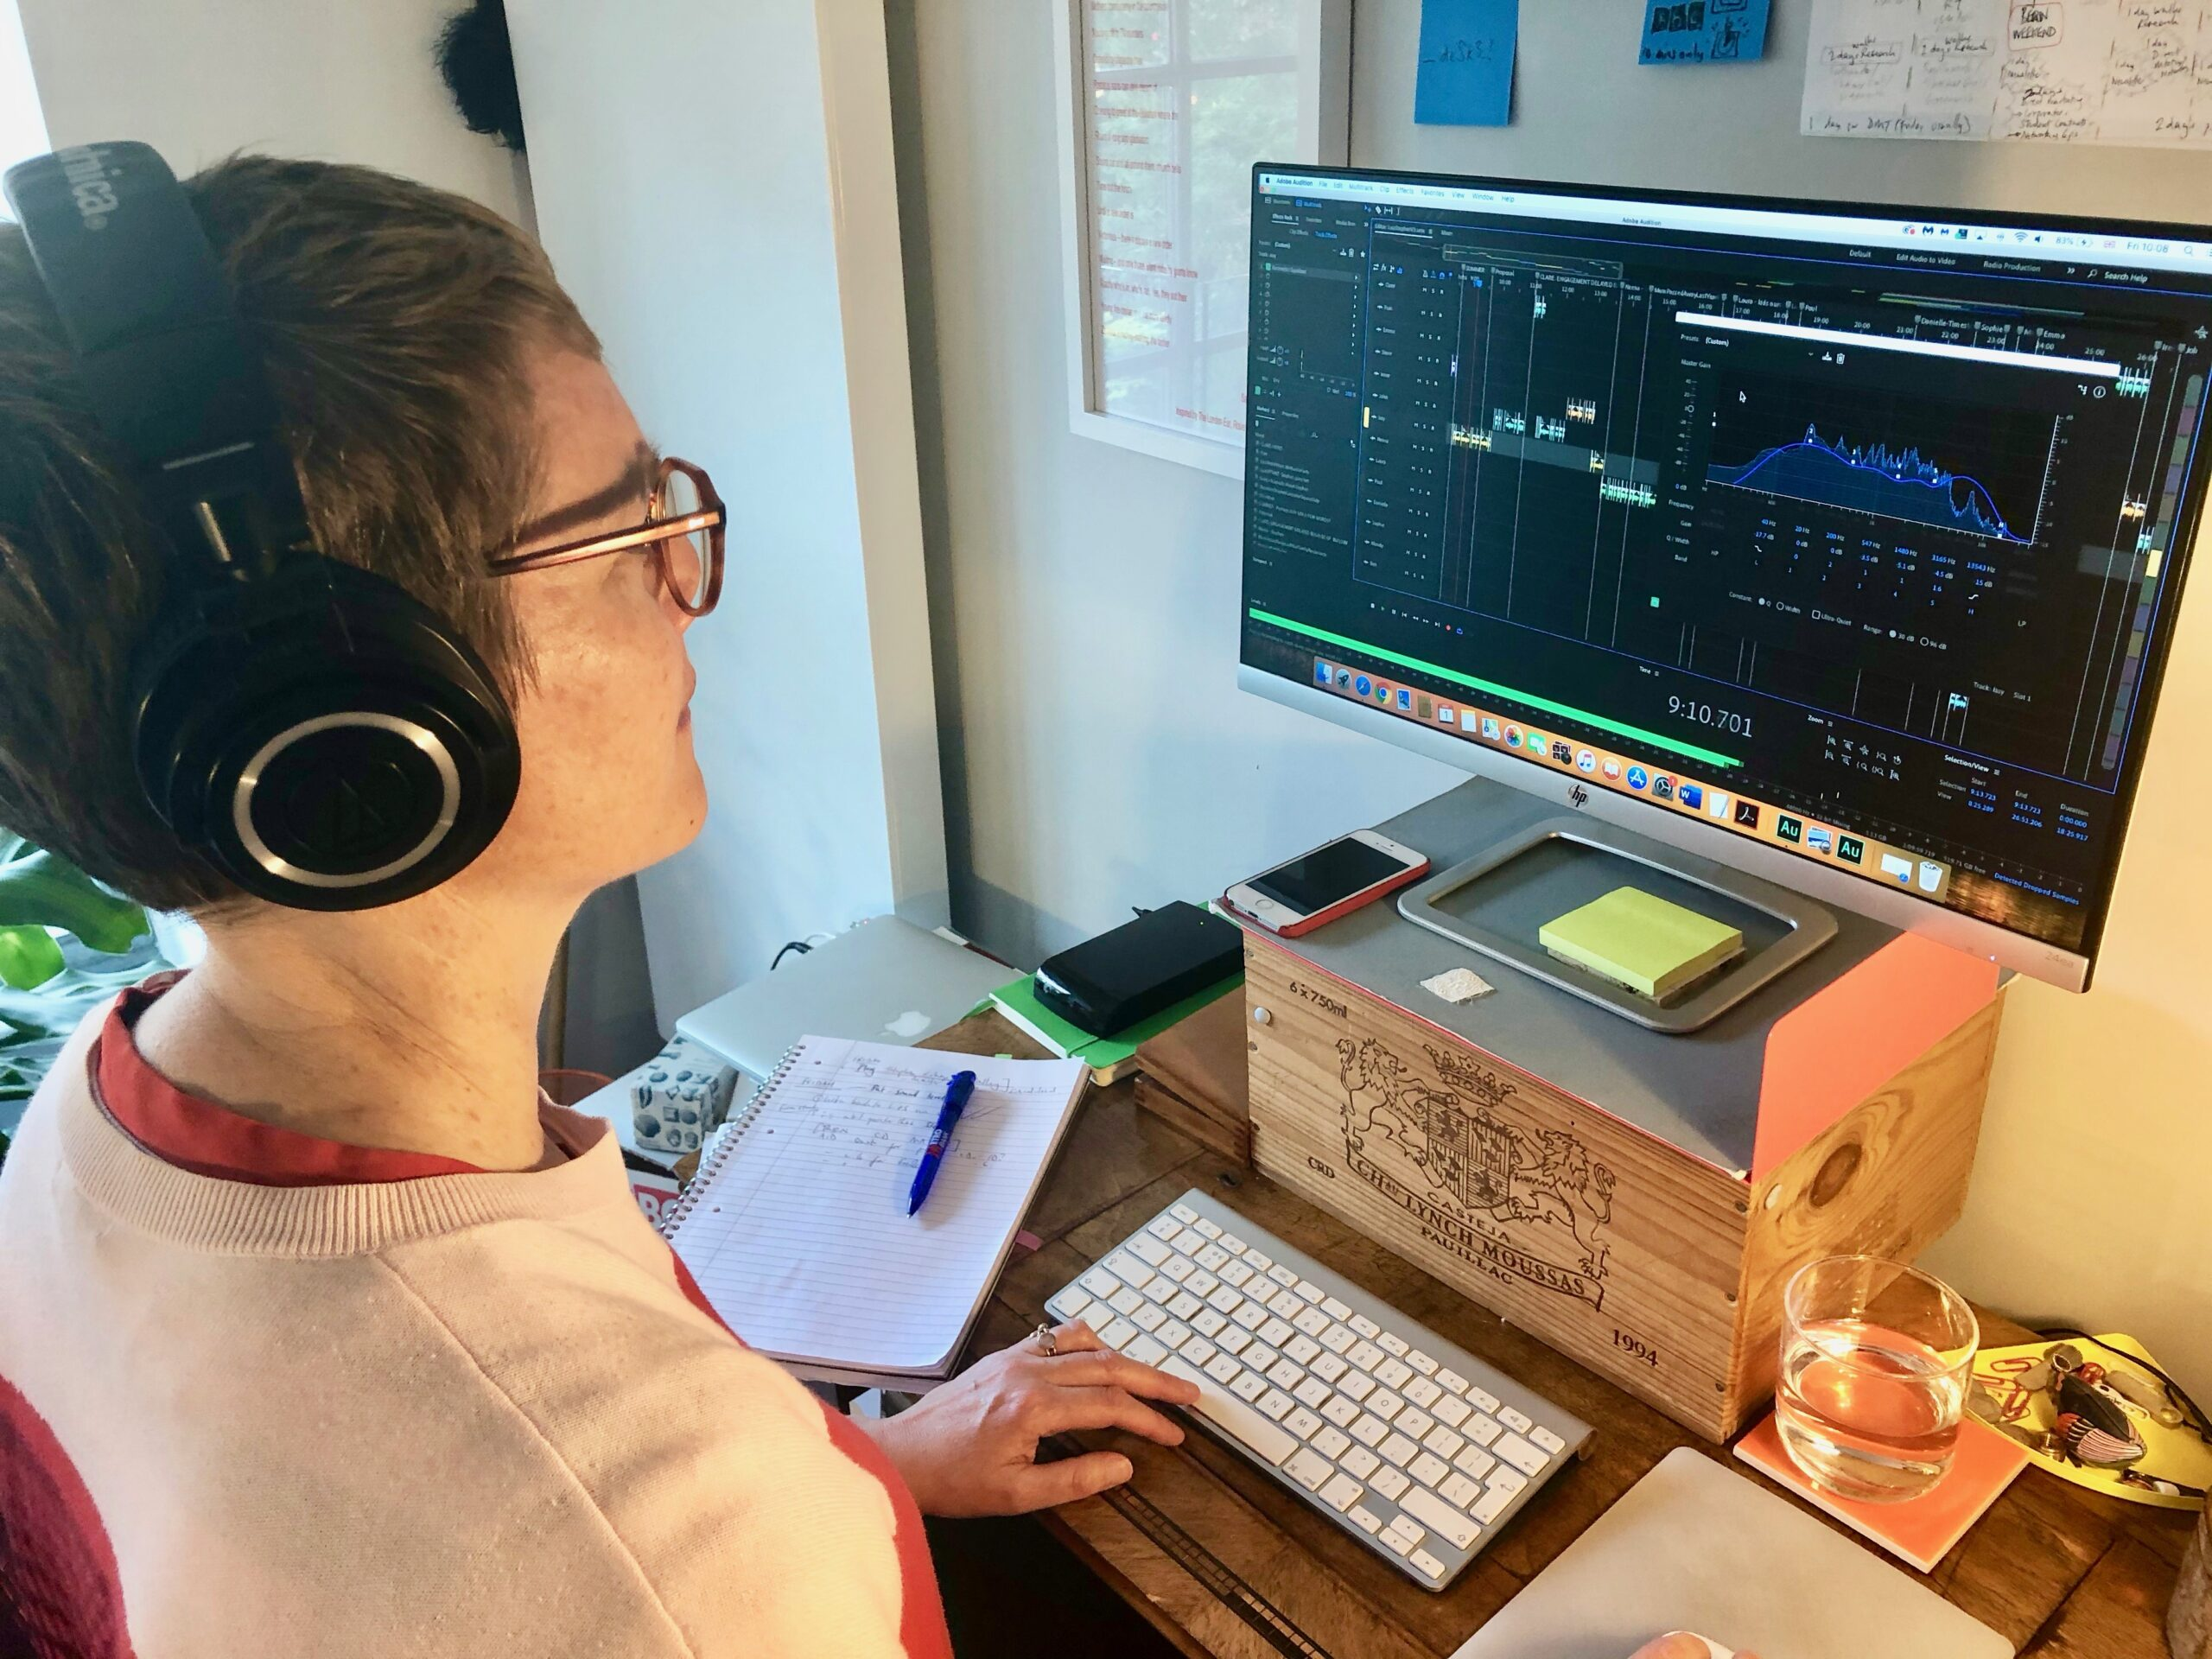 Tickertape Productions founder Rosie Oliver at work editing a Spoken Portrait